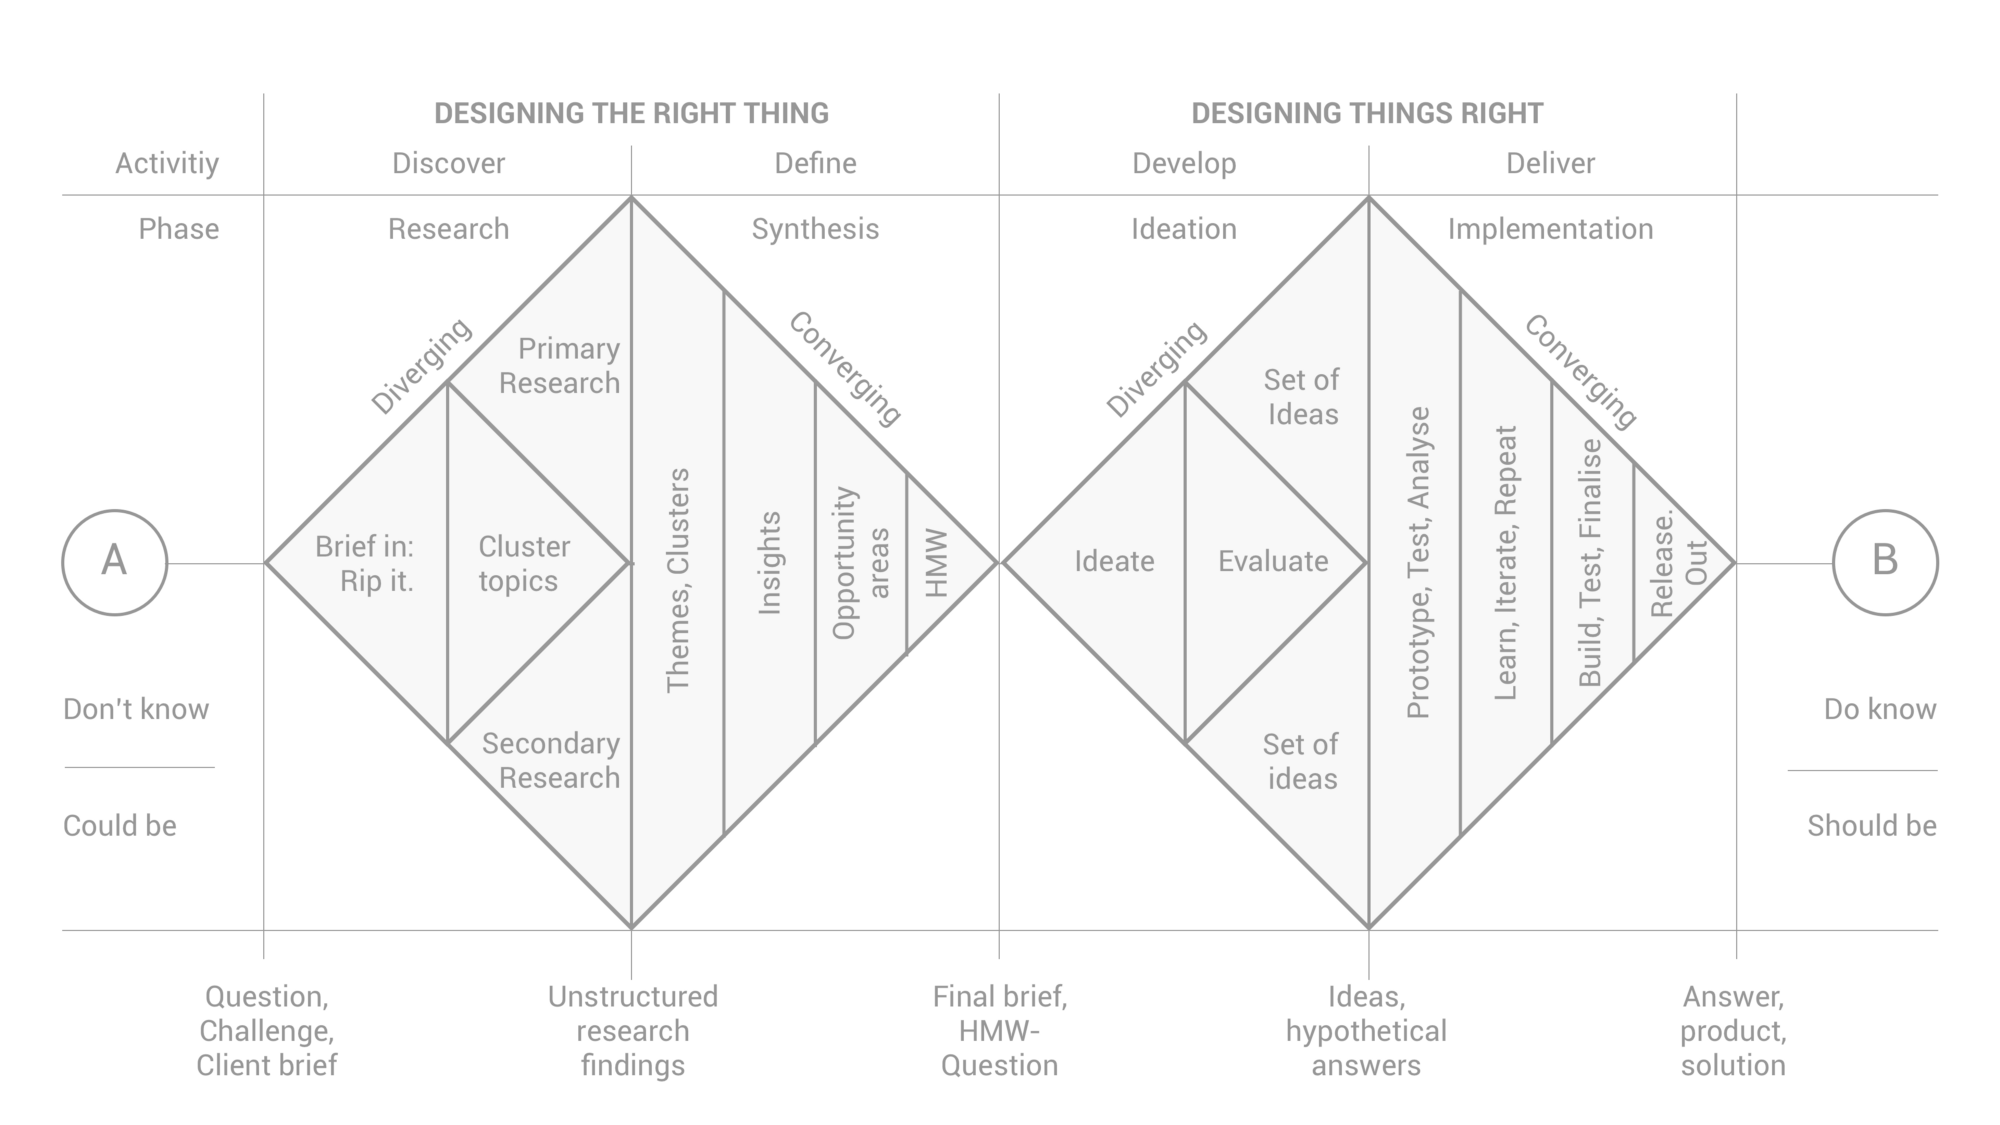 How To Mash Up And Benefit From Pm And The Design Thinking